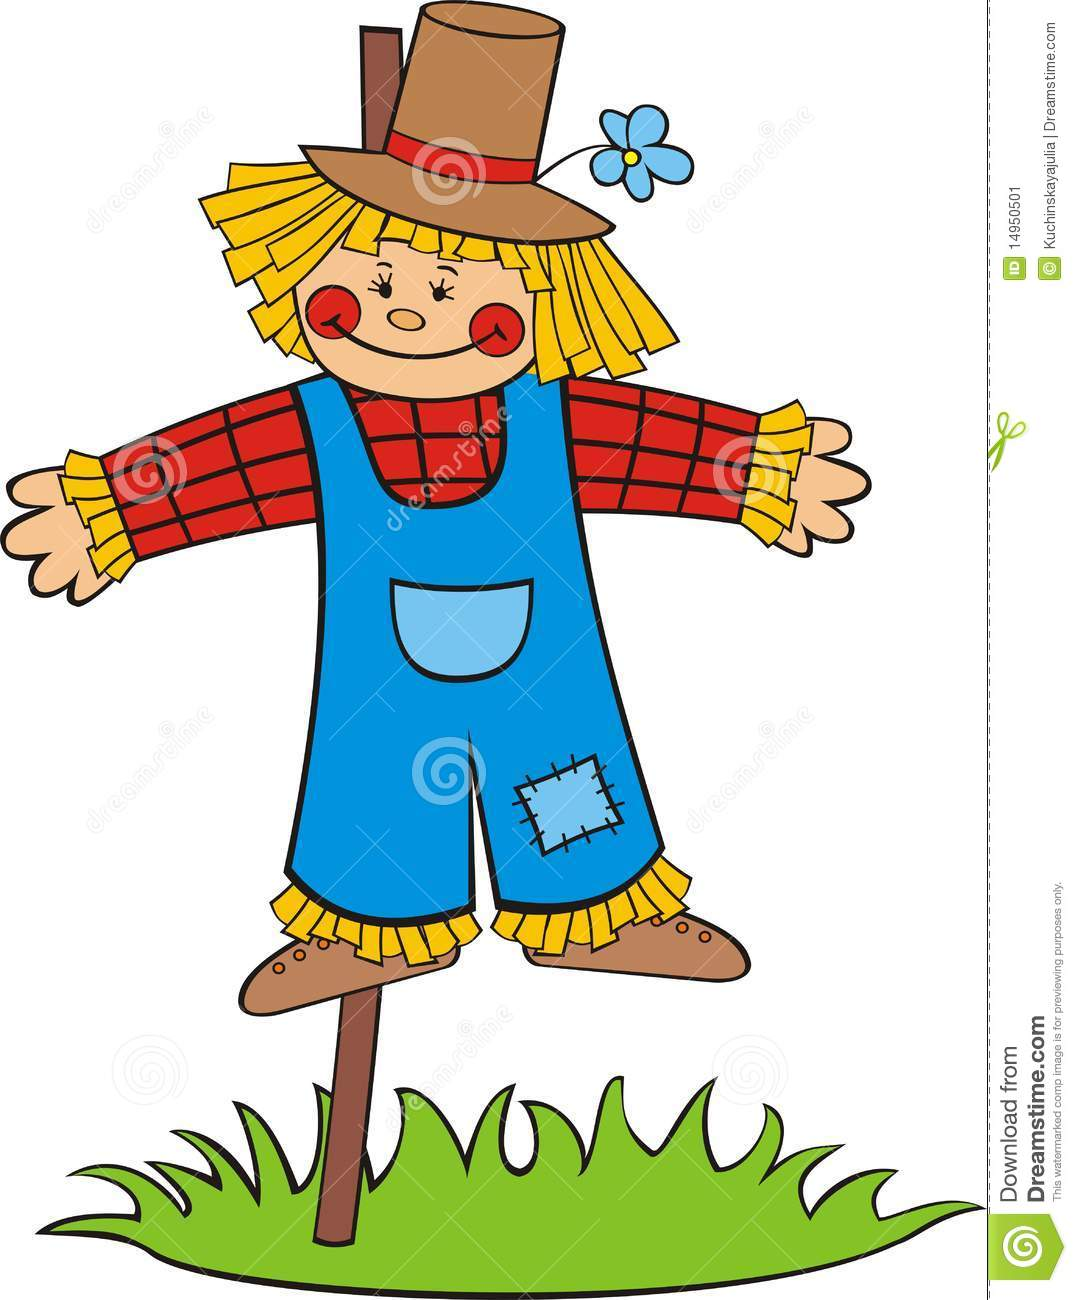 Cute scarecrow cartoon images amp pictures becuo